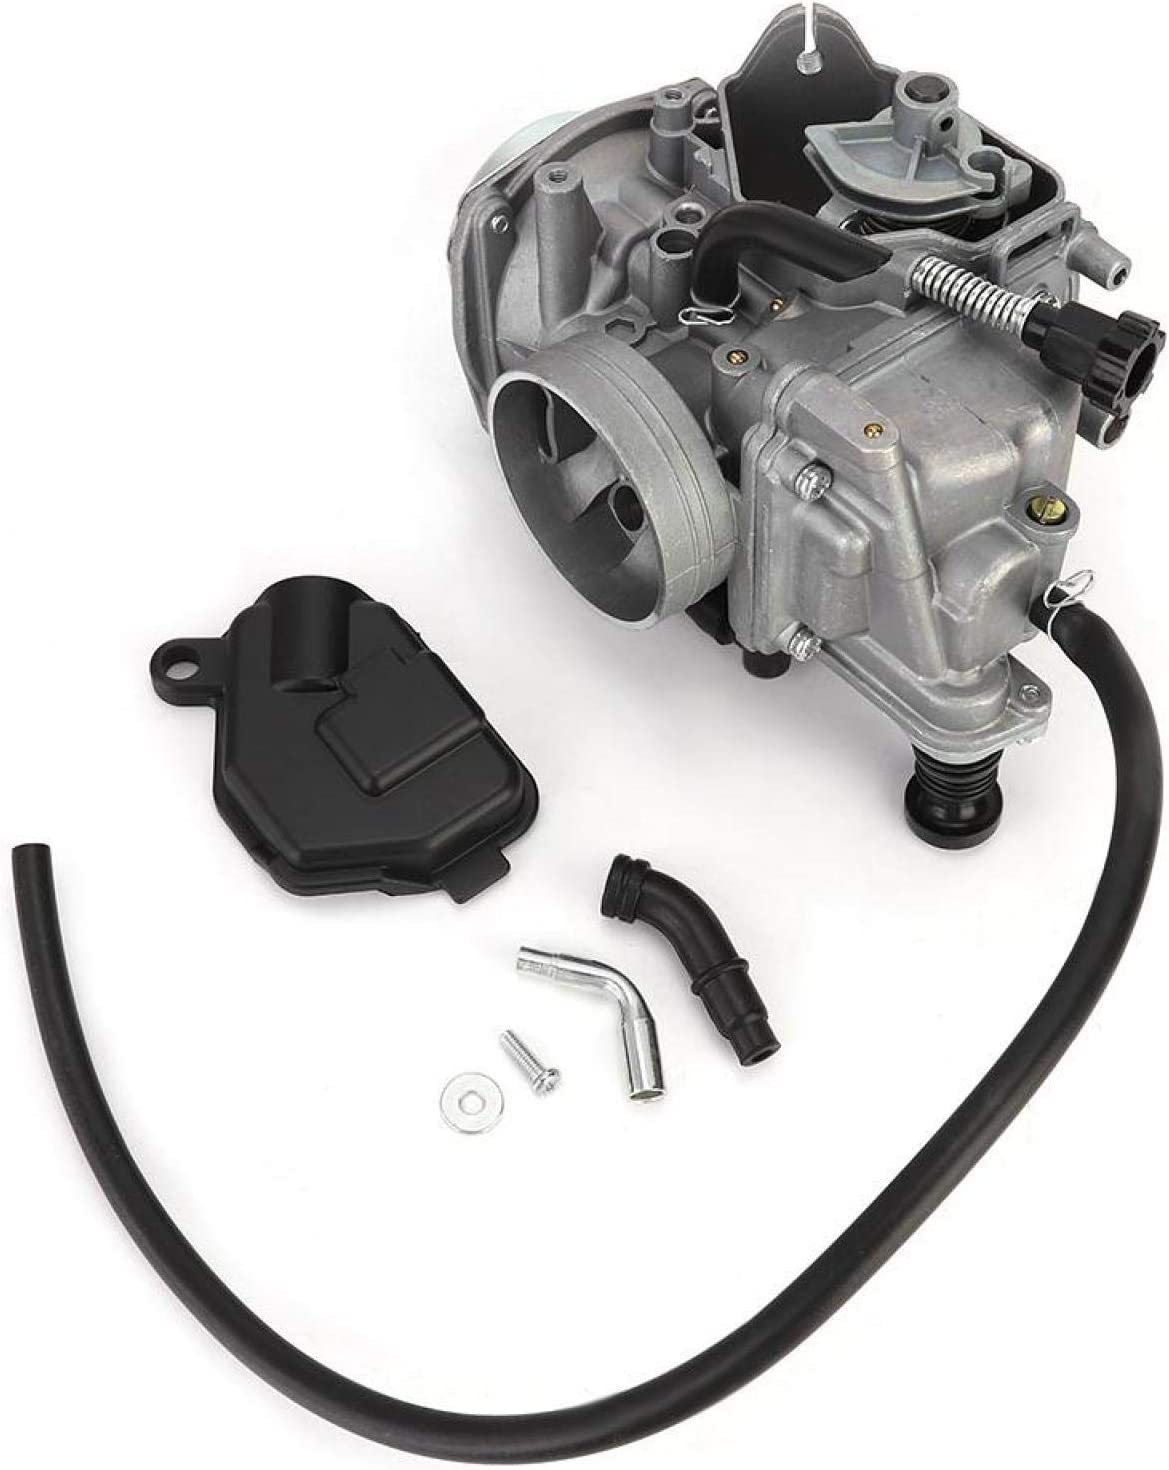 Demeras Max 45% OFF Reliable Lightweight Sturdy overseas Carburetor f TRX300 Carb for